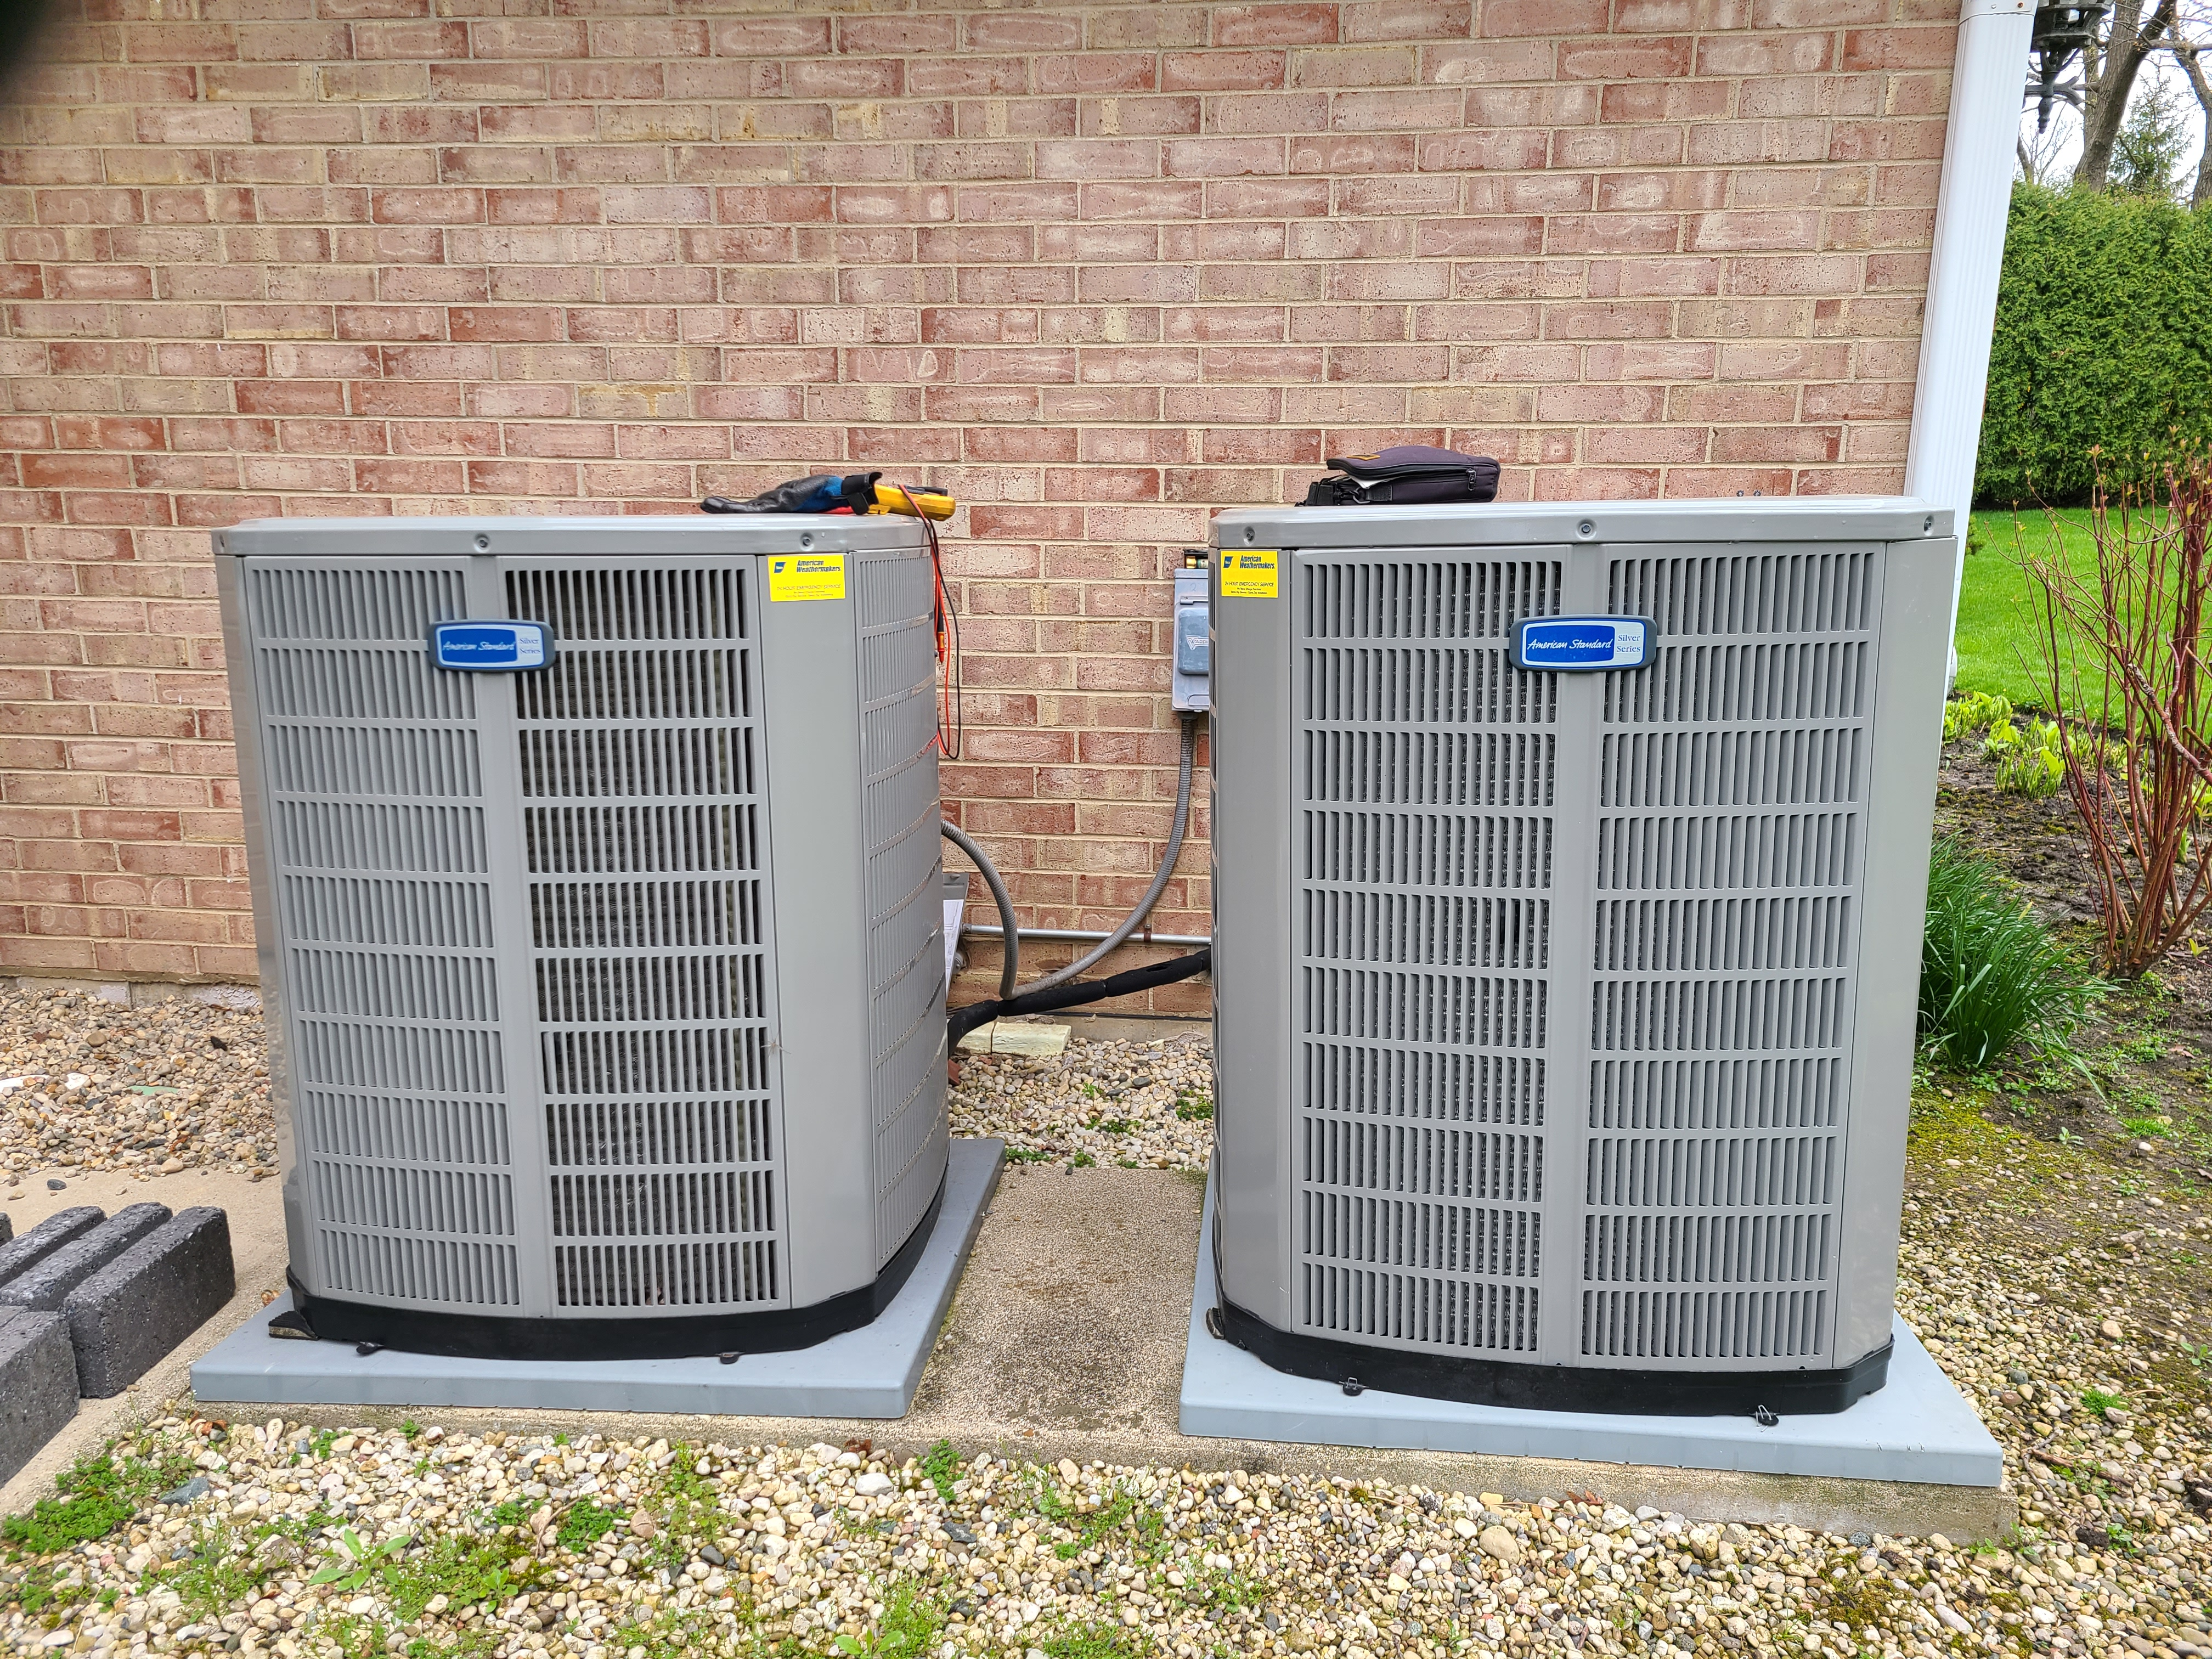 Two American Standard air conditioning systems cleaned and checked, ready for spring.